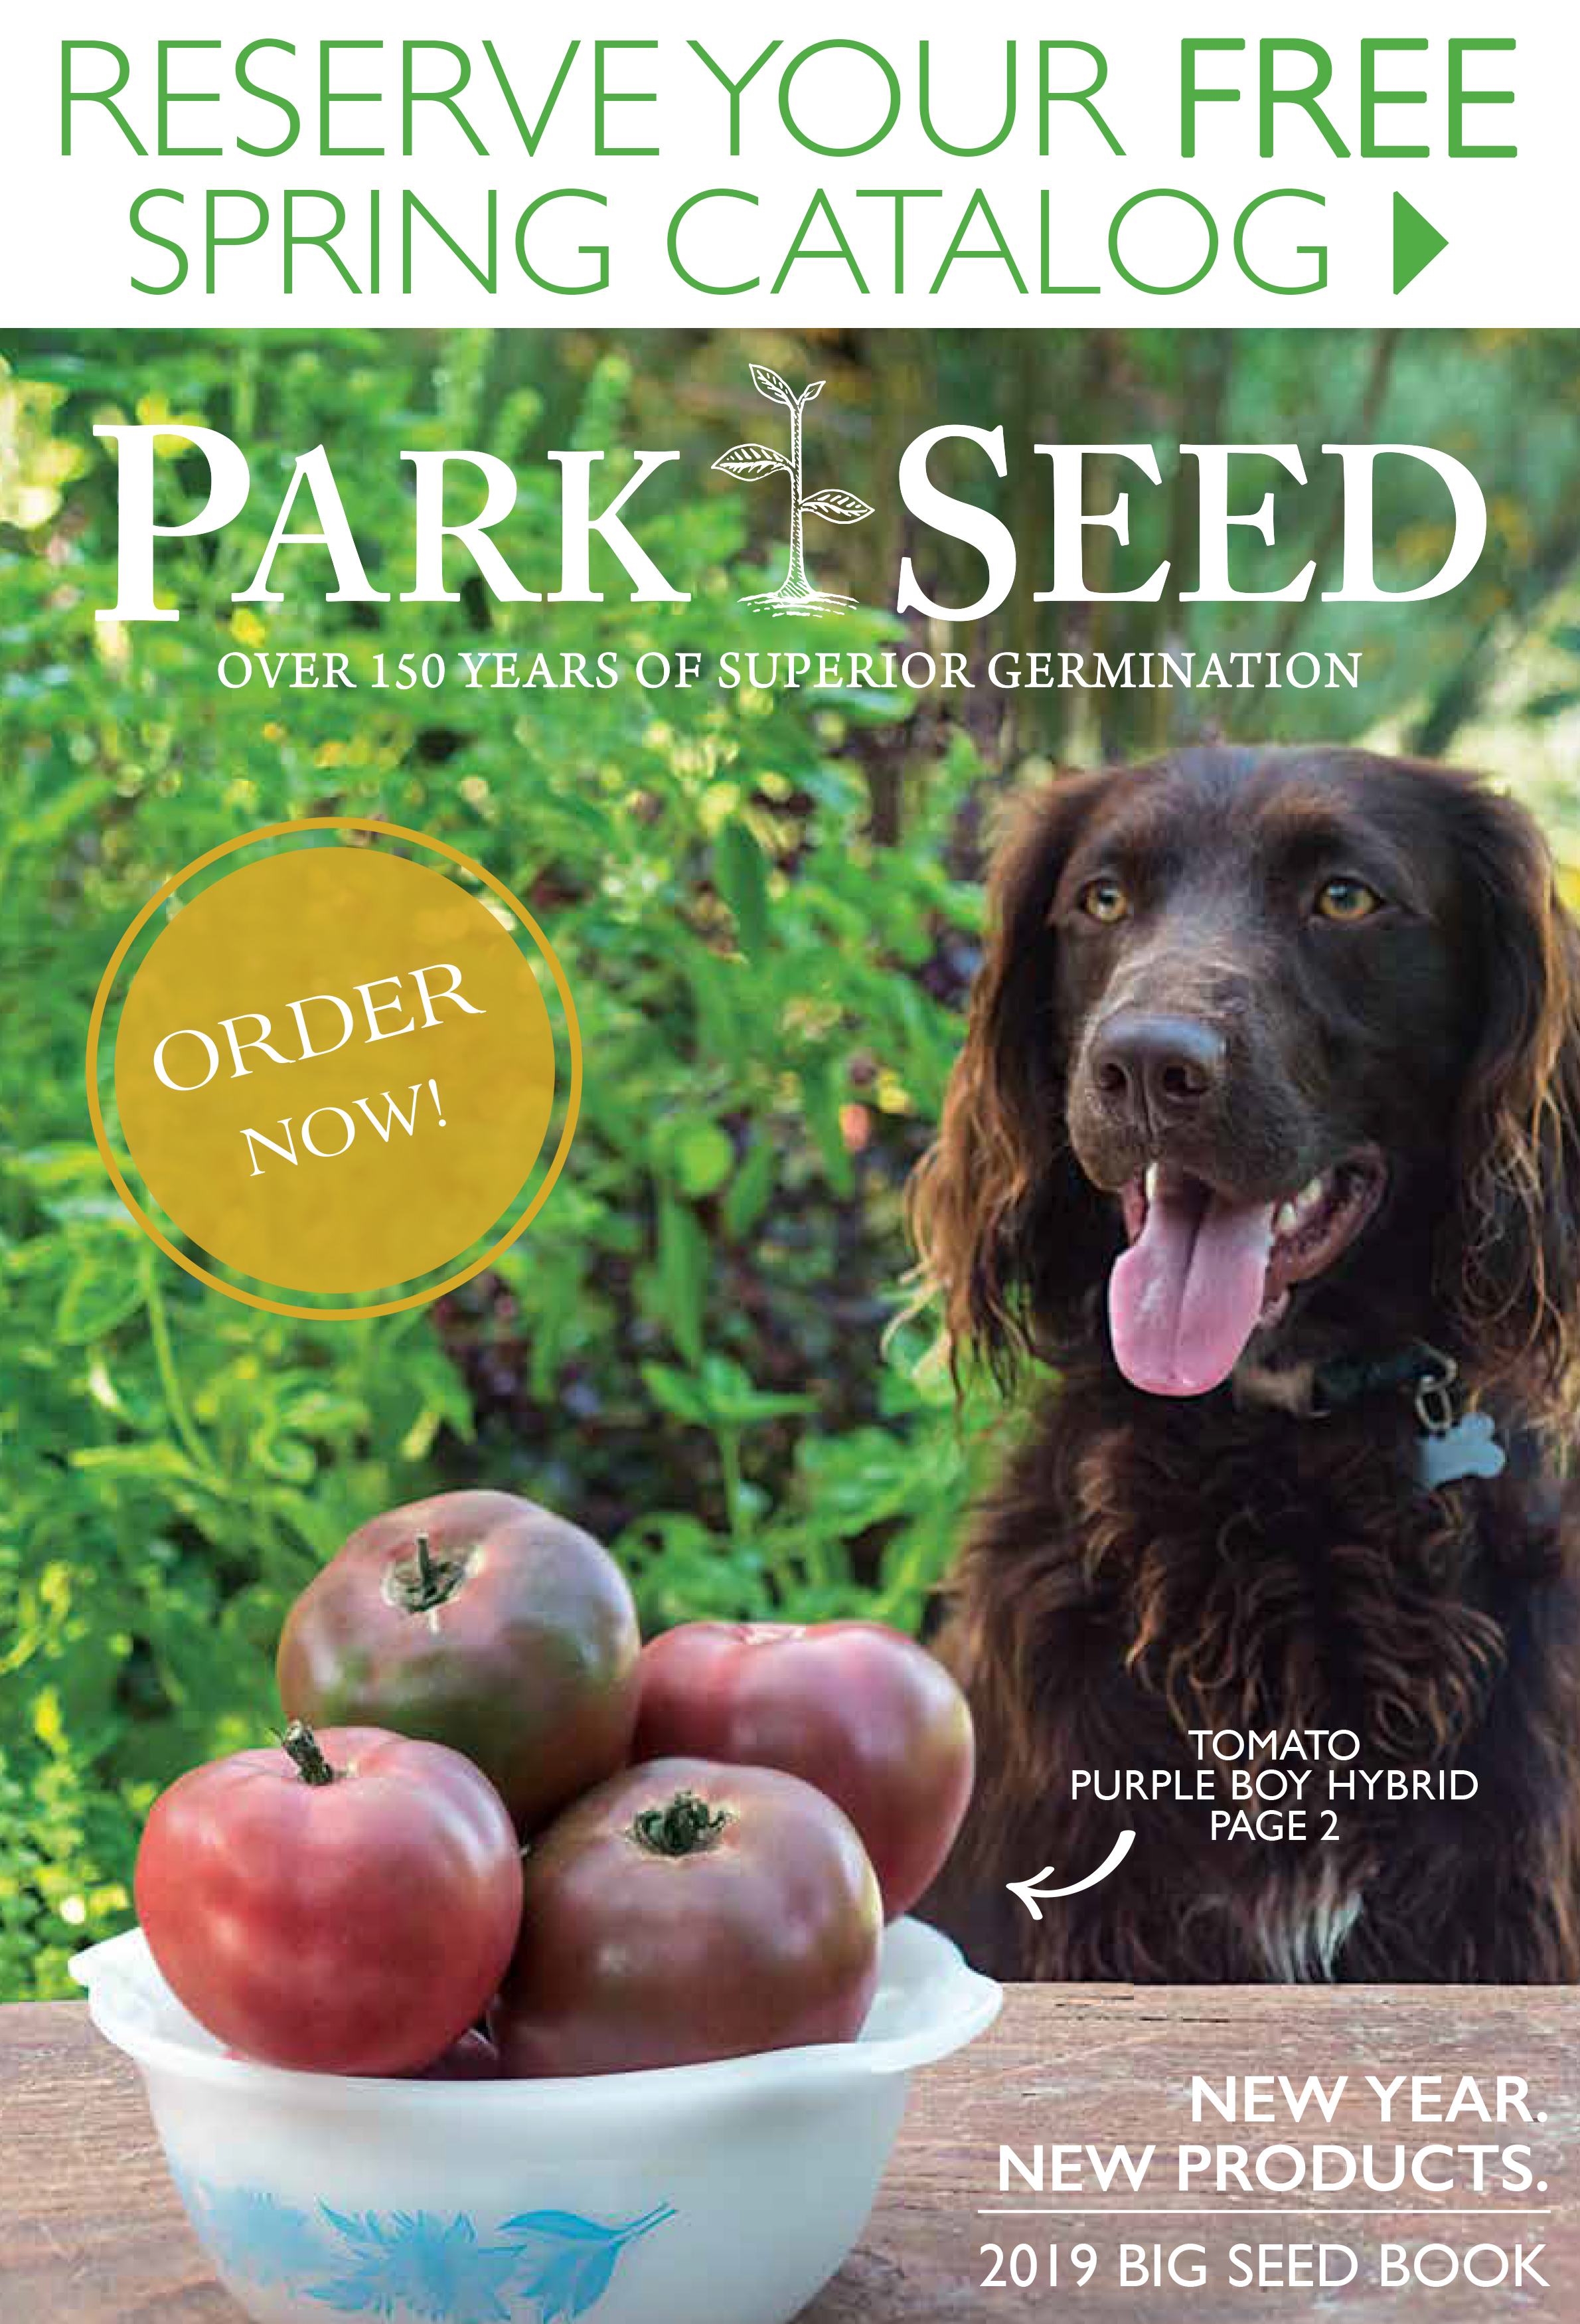 Reserve Your Free Spring Catalog